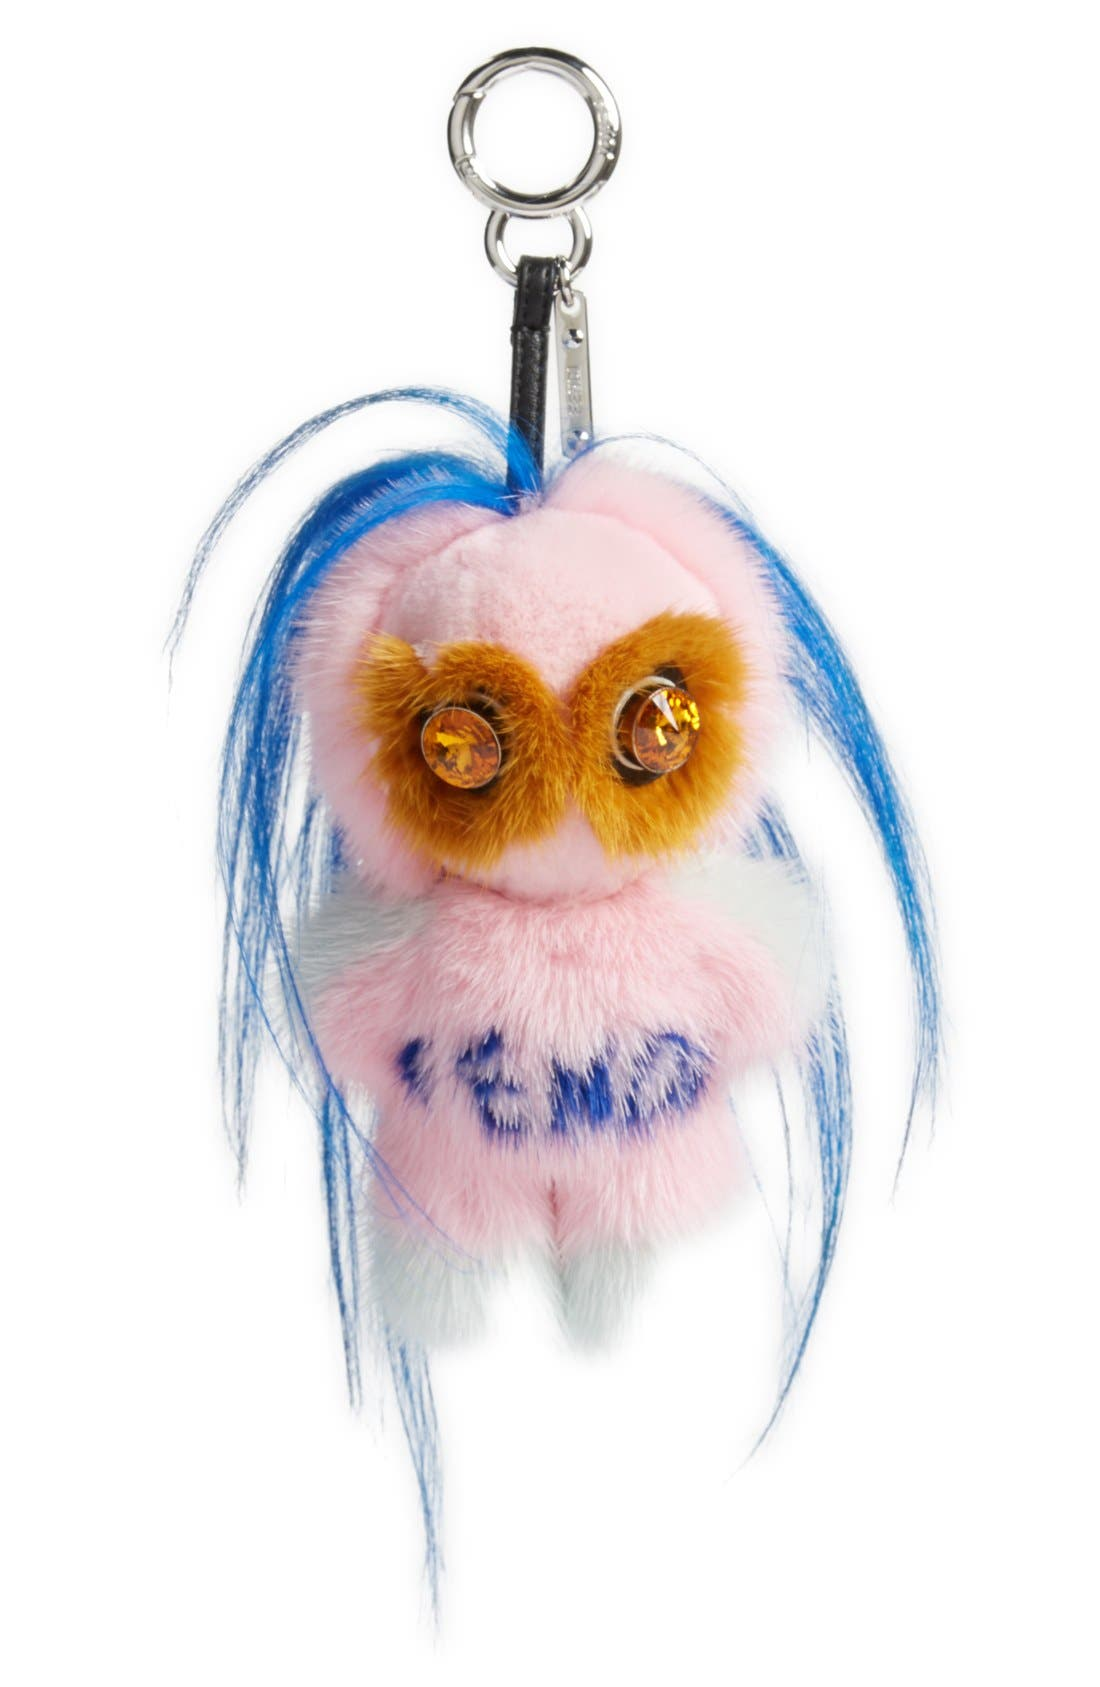 Fendi 'Fendirumi Piro-Chan' Genuine Fur Bag Charm